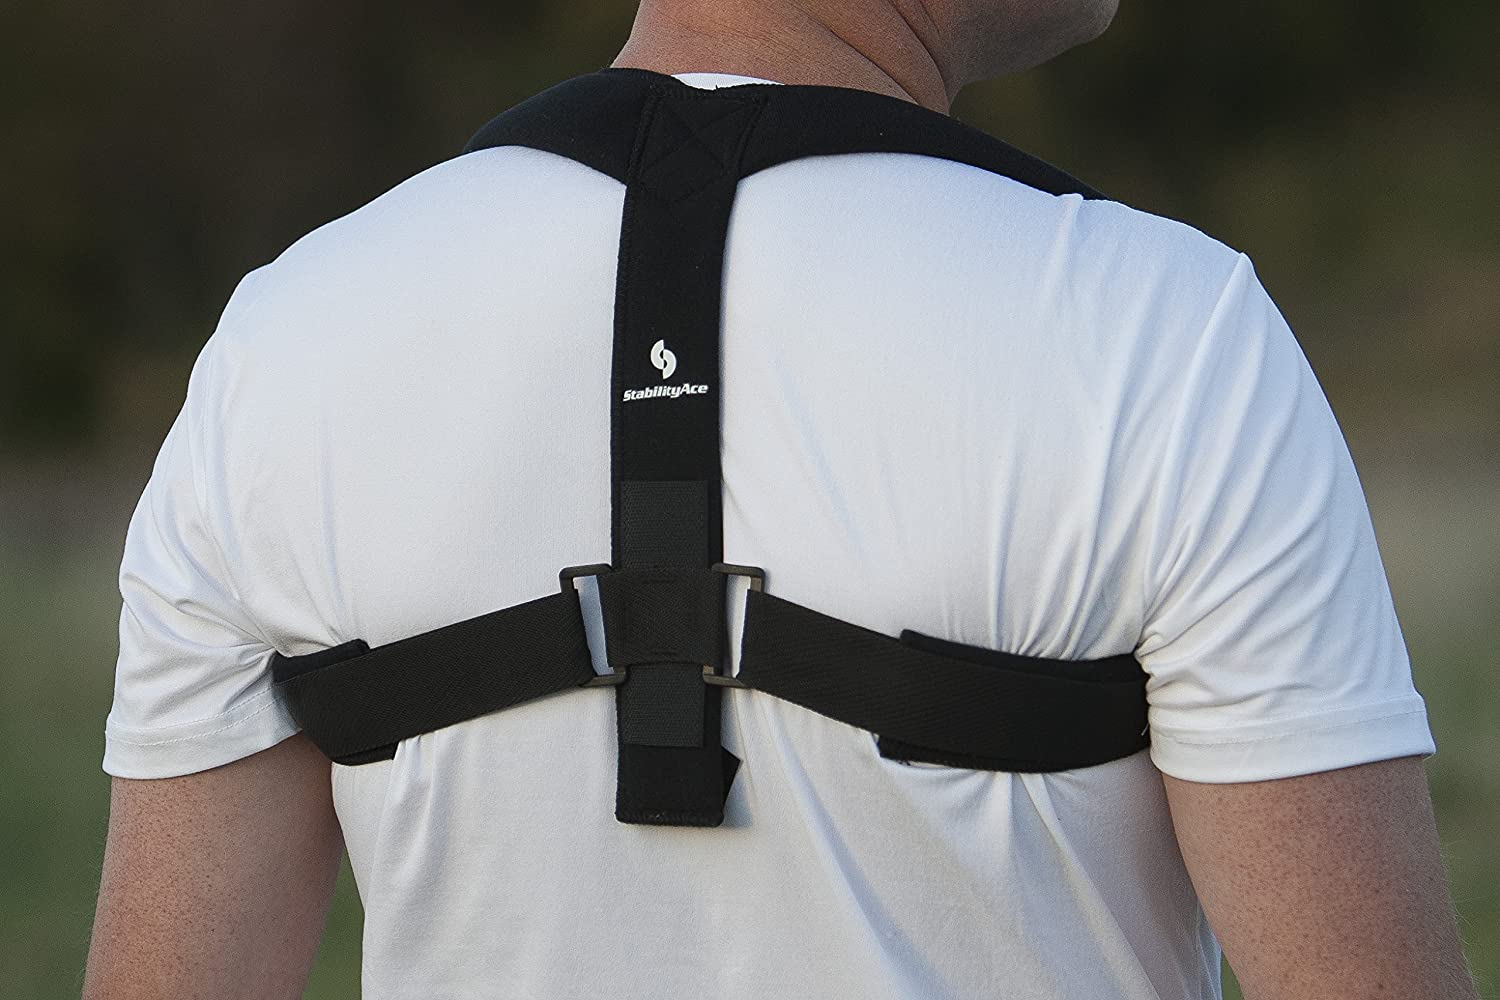 StabilityAce Posture Corrector & Support